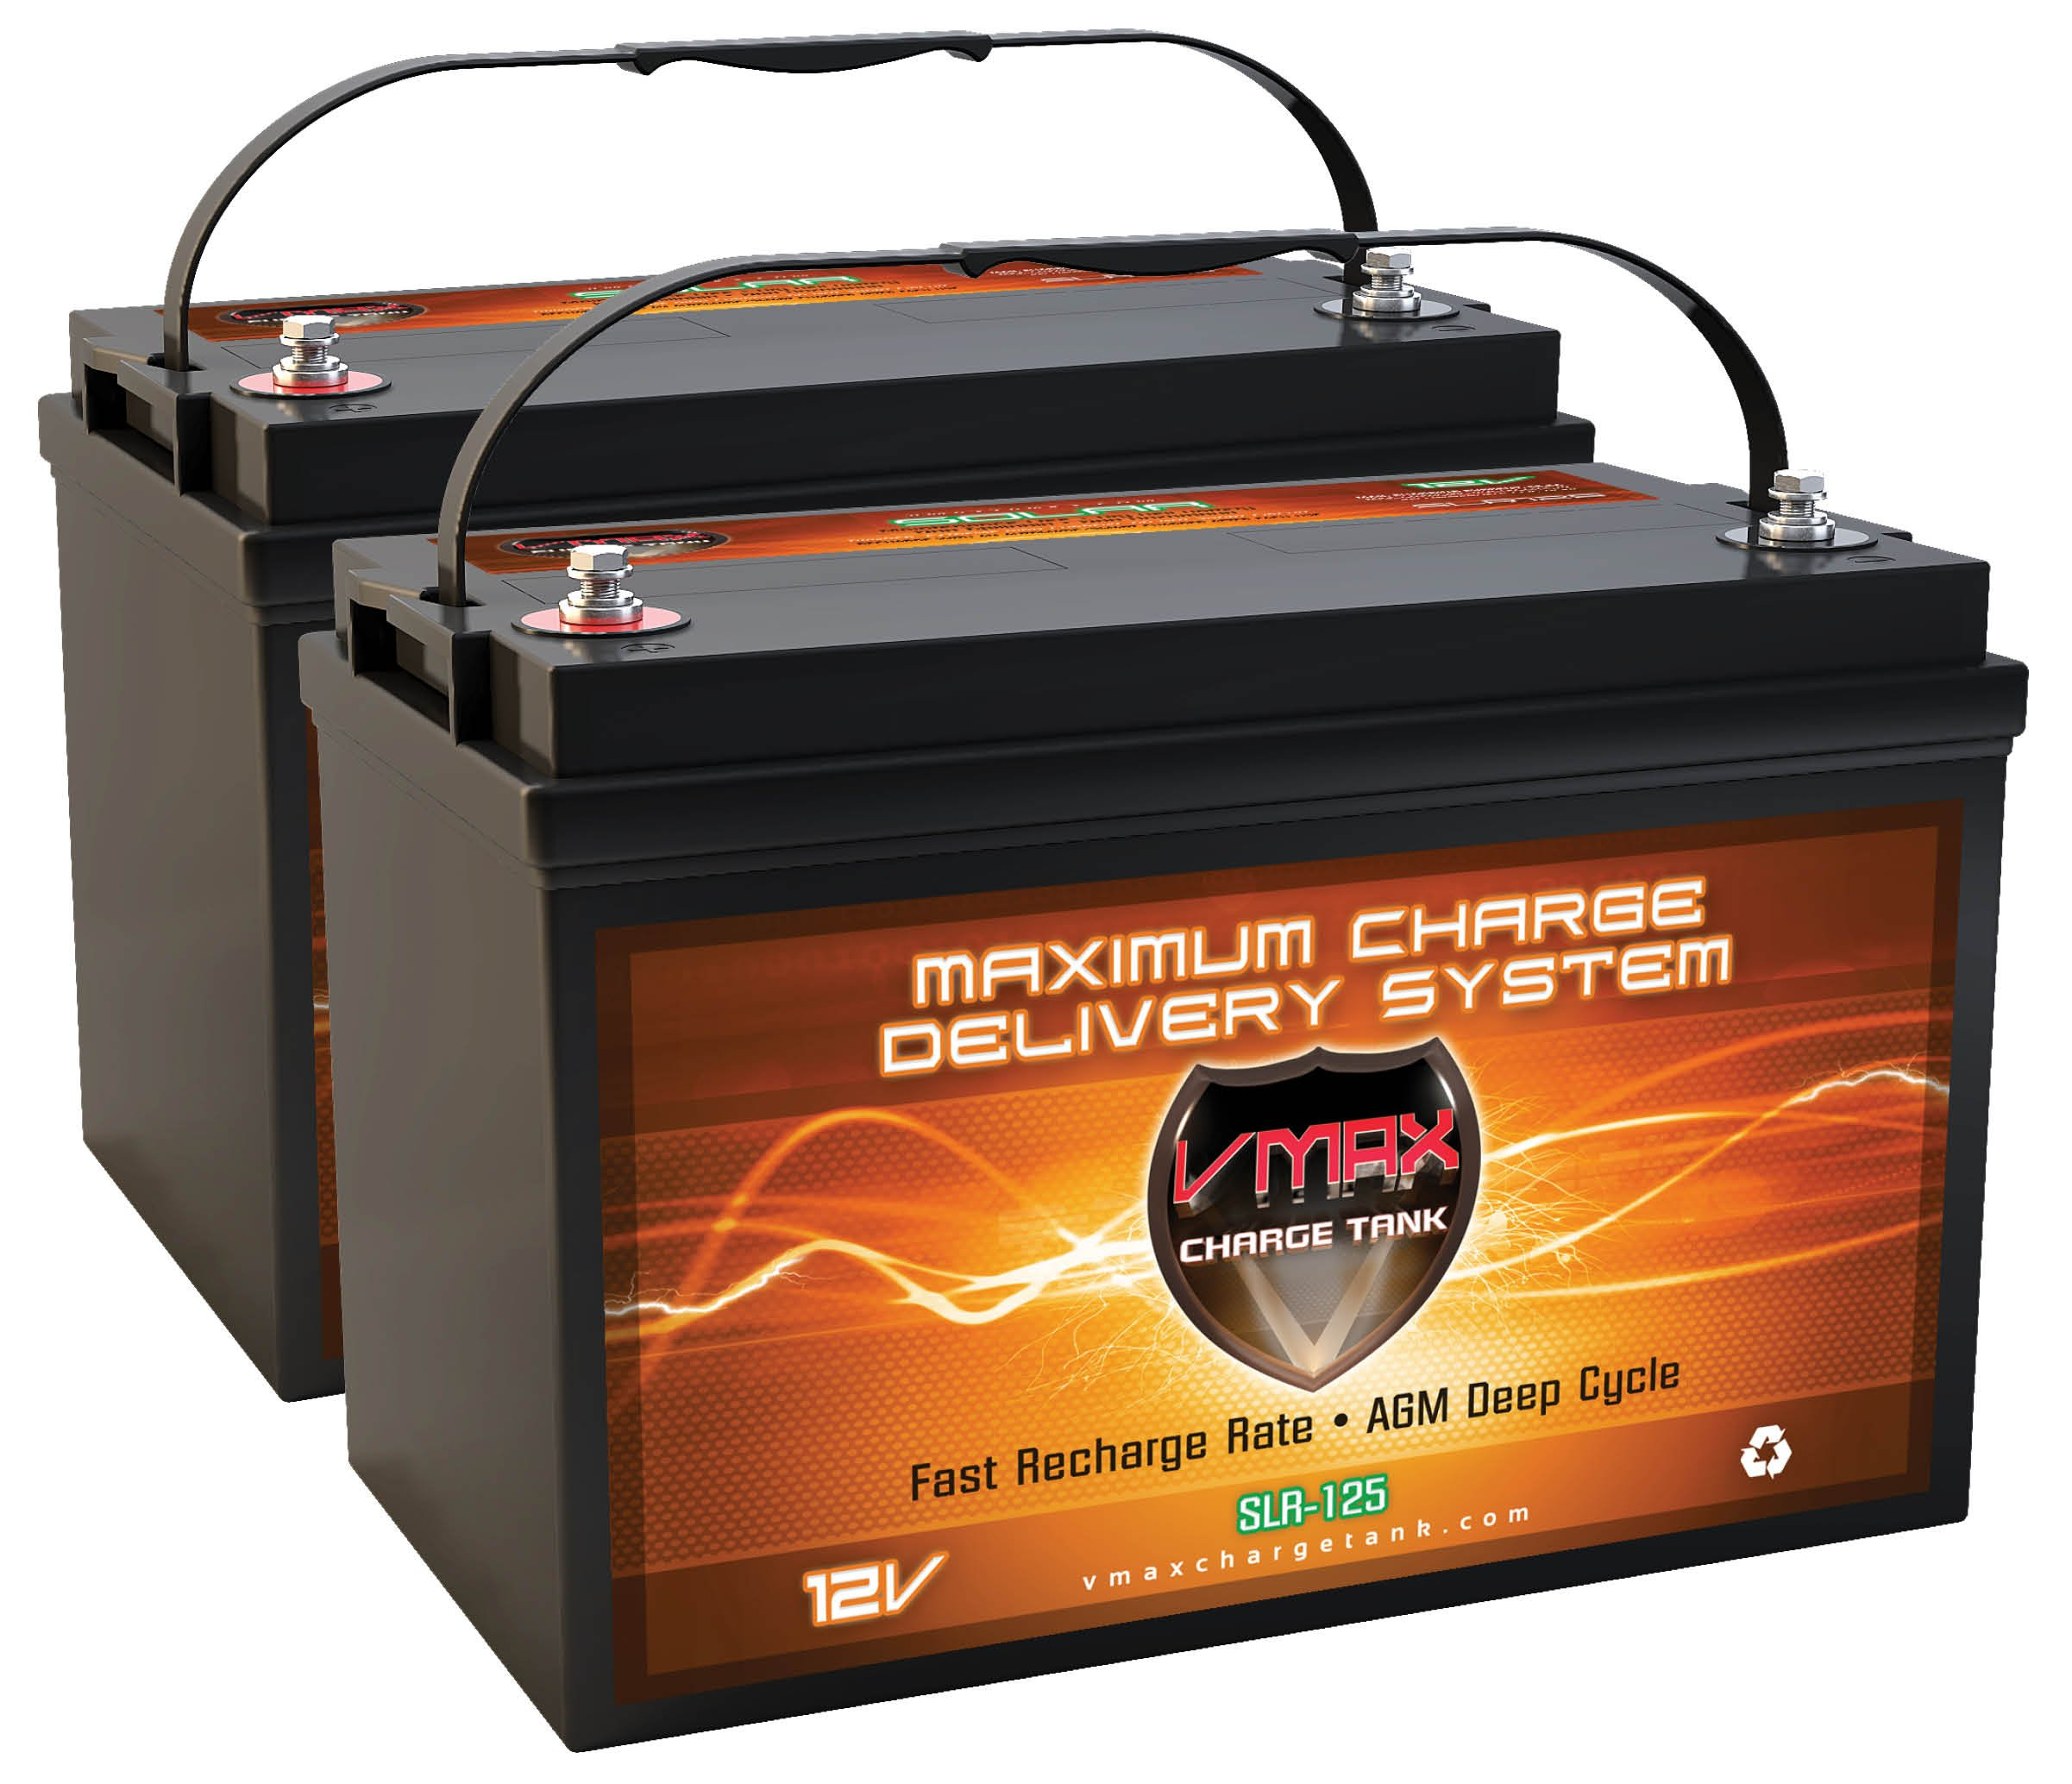 VMAXSLR125-2 QTY 2 VMAX SLR125 AGM Sealed Deep Cycle 12V 125Ah (250Ah total) batteries for Use with Pv Solar Panels,Smart chargers wind Turbine and Inverters by VMAX Solar